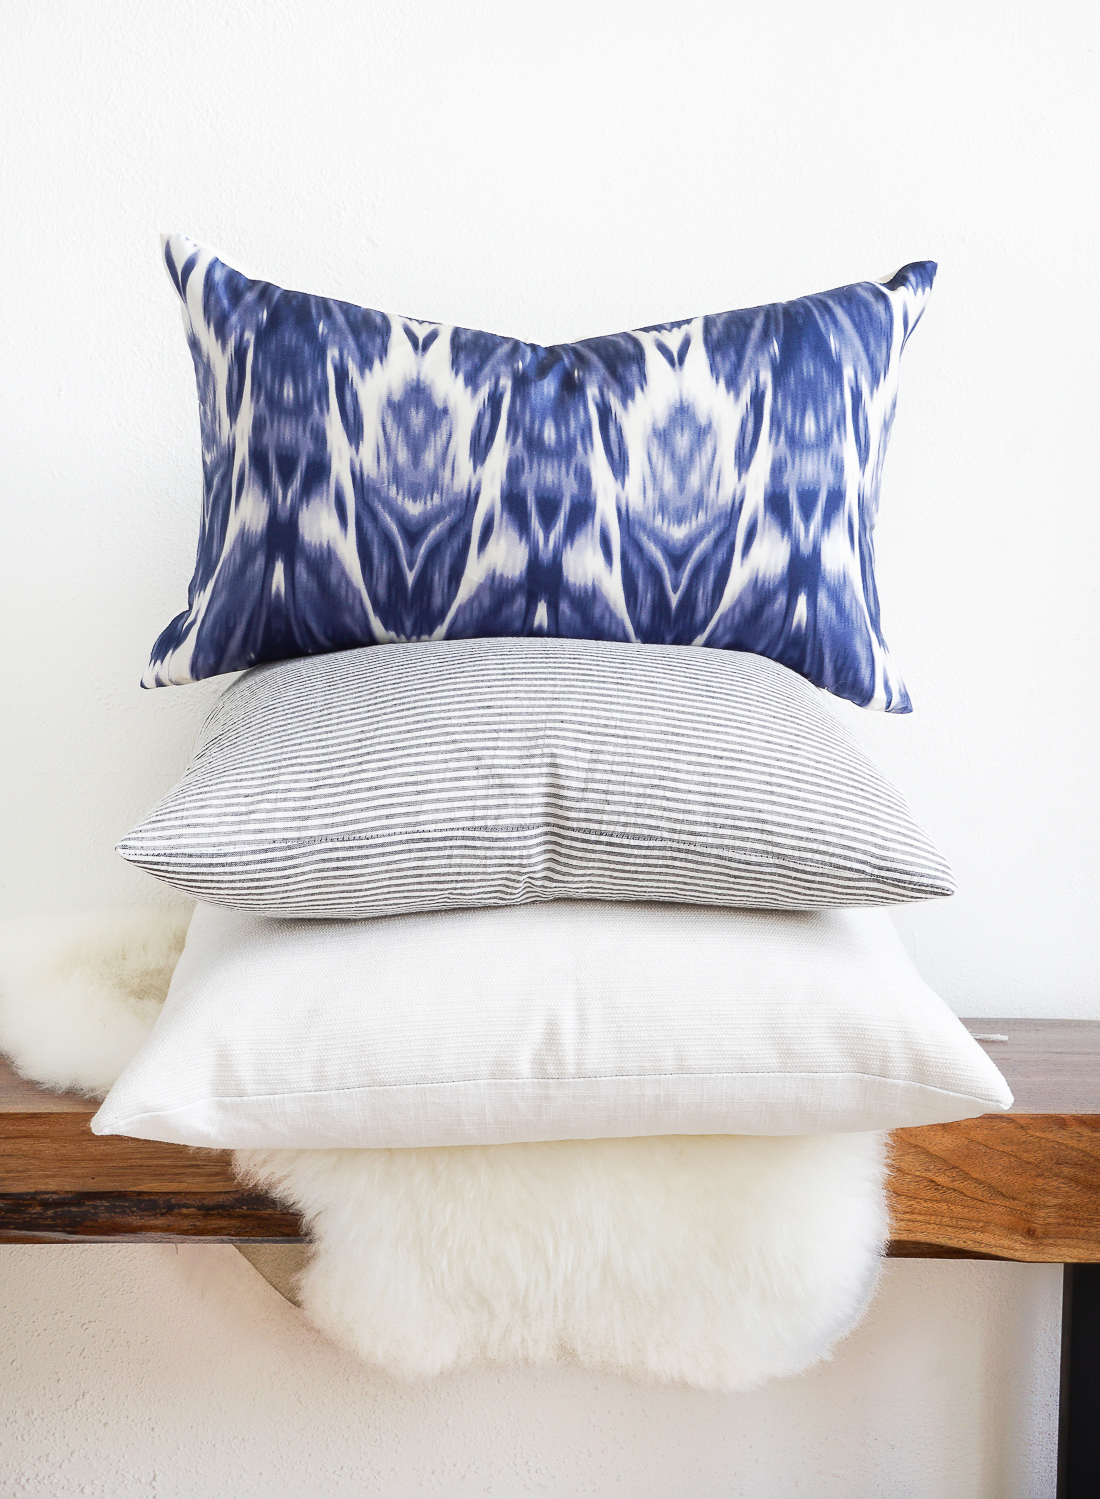 Turn the old dresses you no longer wear into throw pillows for your sofa! Click for the full tutorial.